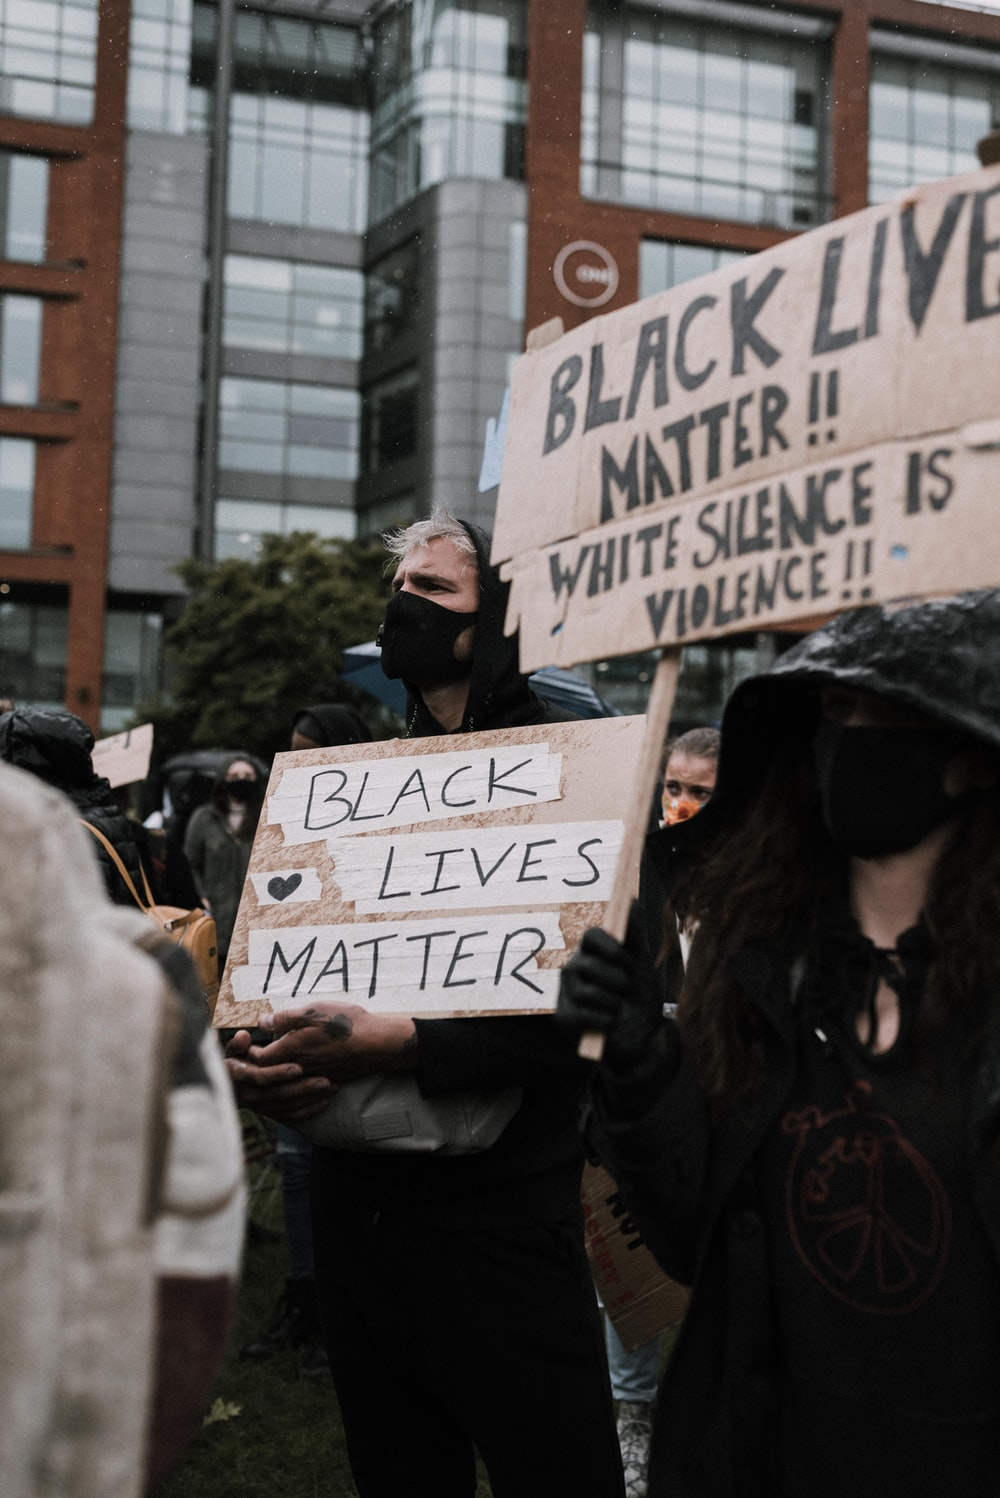 woman in black jacket holding white and black signage